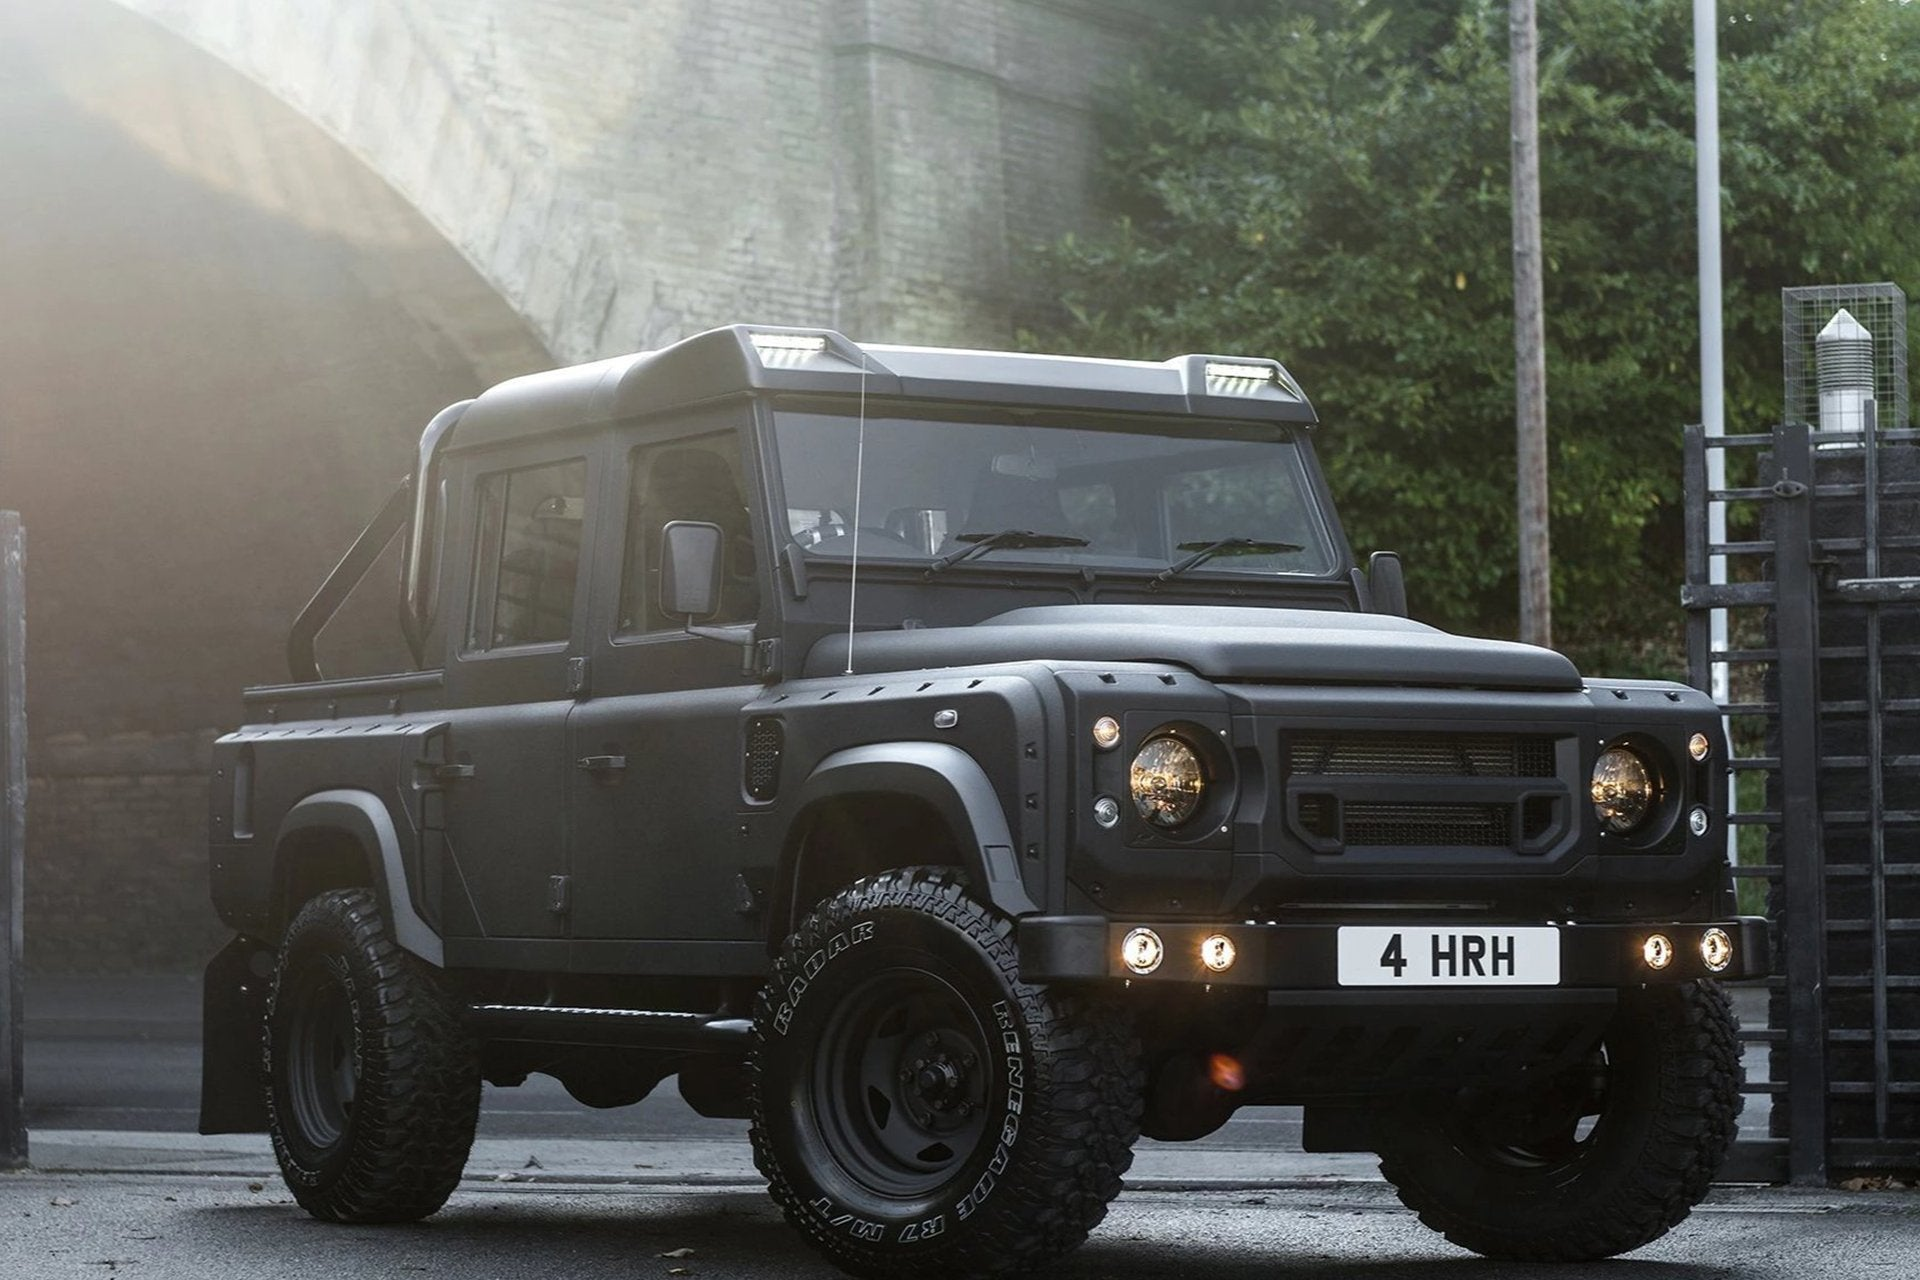 Land Rover Defender 110 (1991-2016) Front Roof Shield With Integrated Led Lights by Chelsea Truck Company - Image 2423